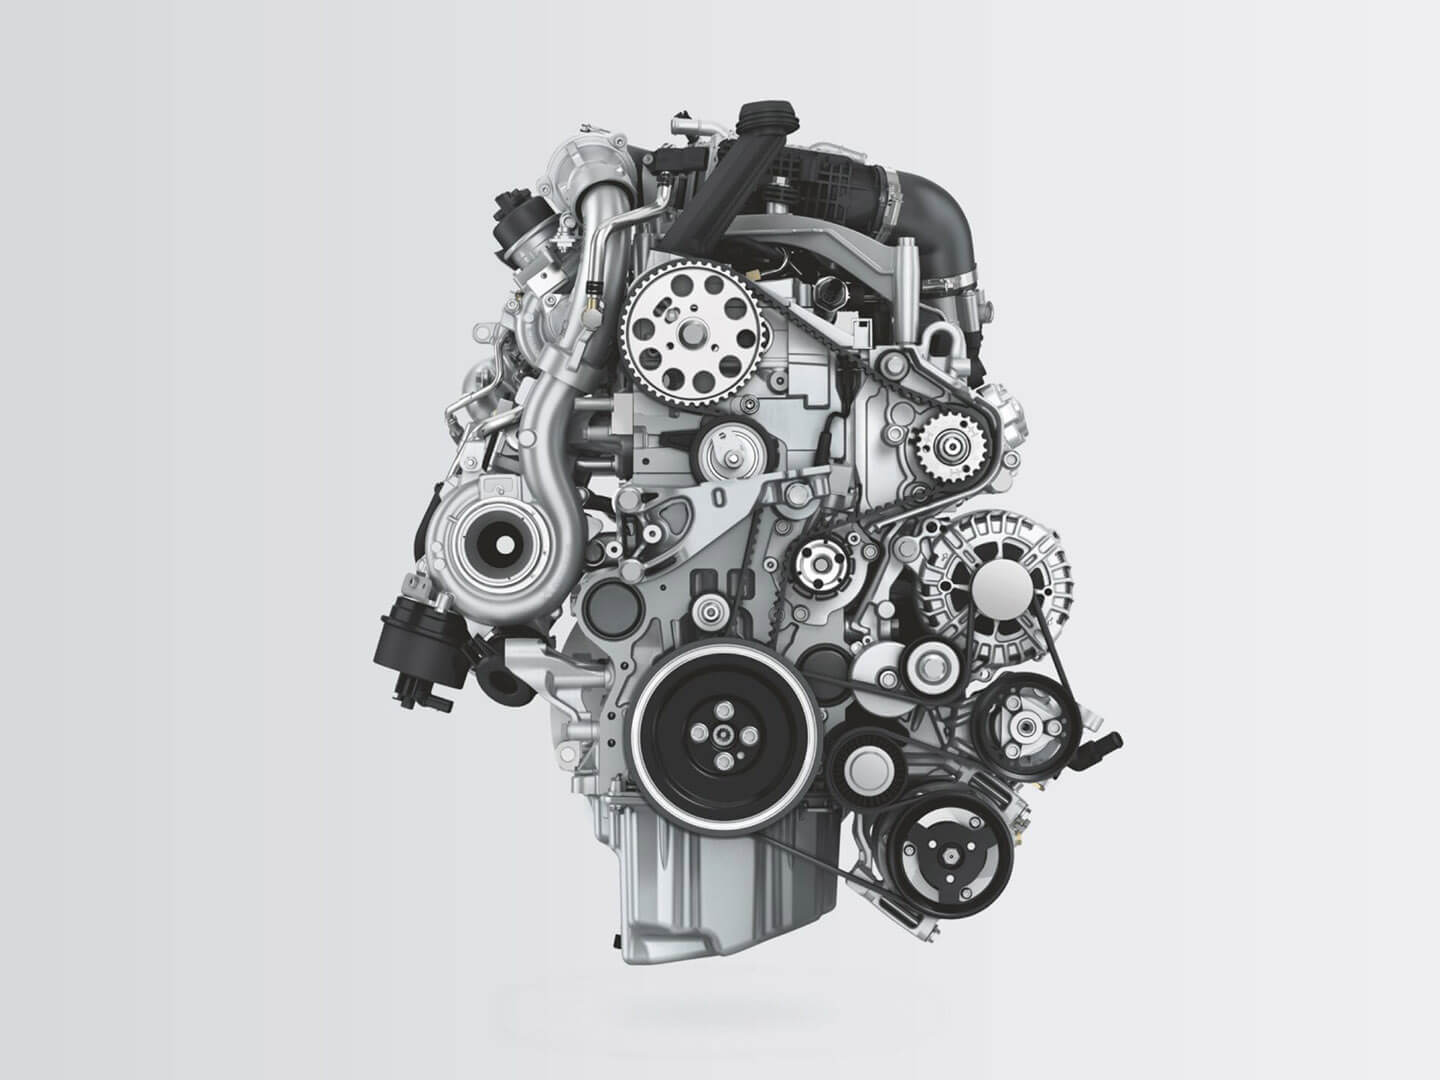 Power through anything TDI engines Image